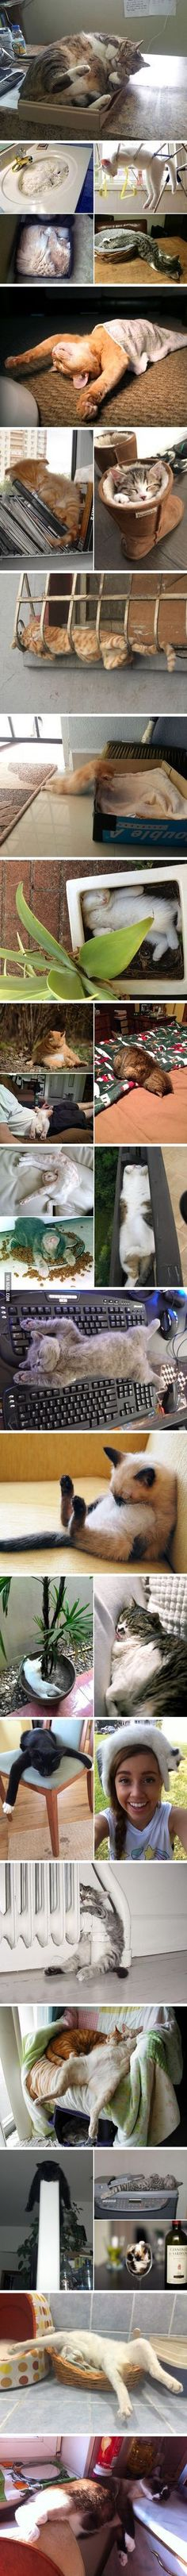 "These cats know how to master the art of ""Sleep-fu"""